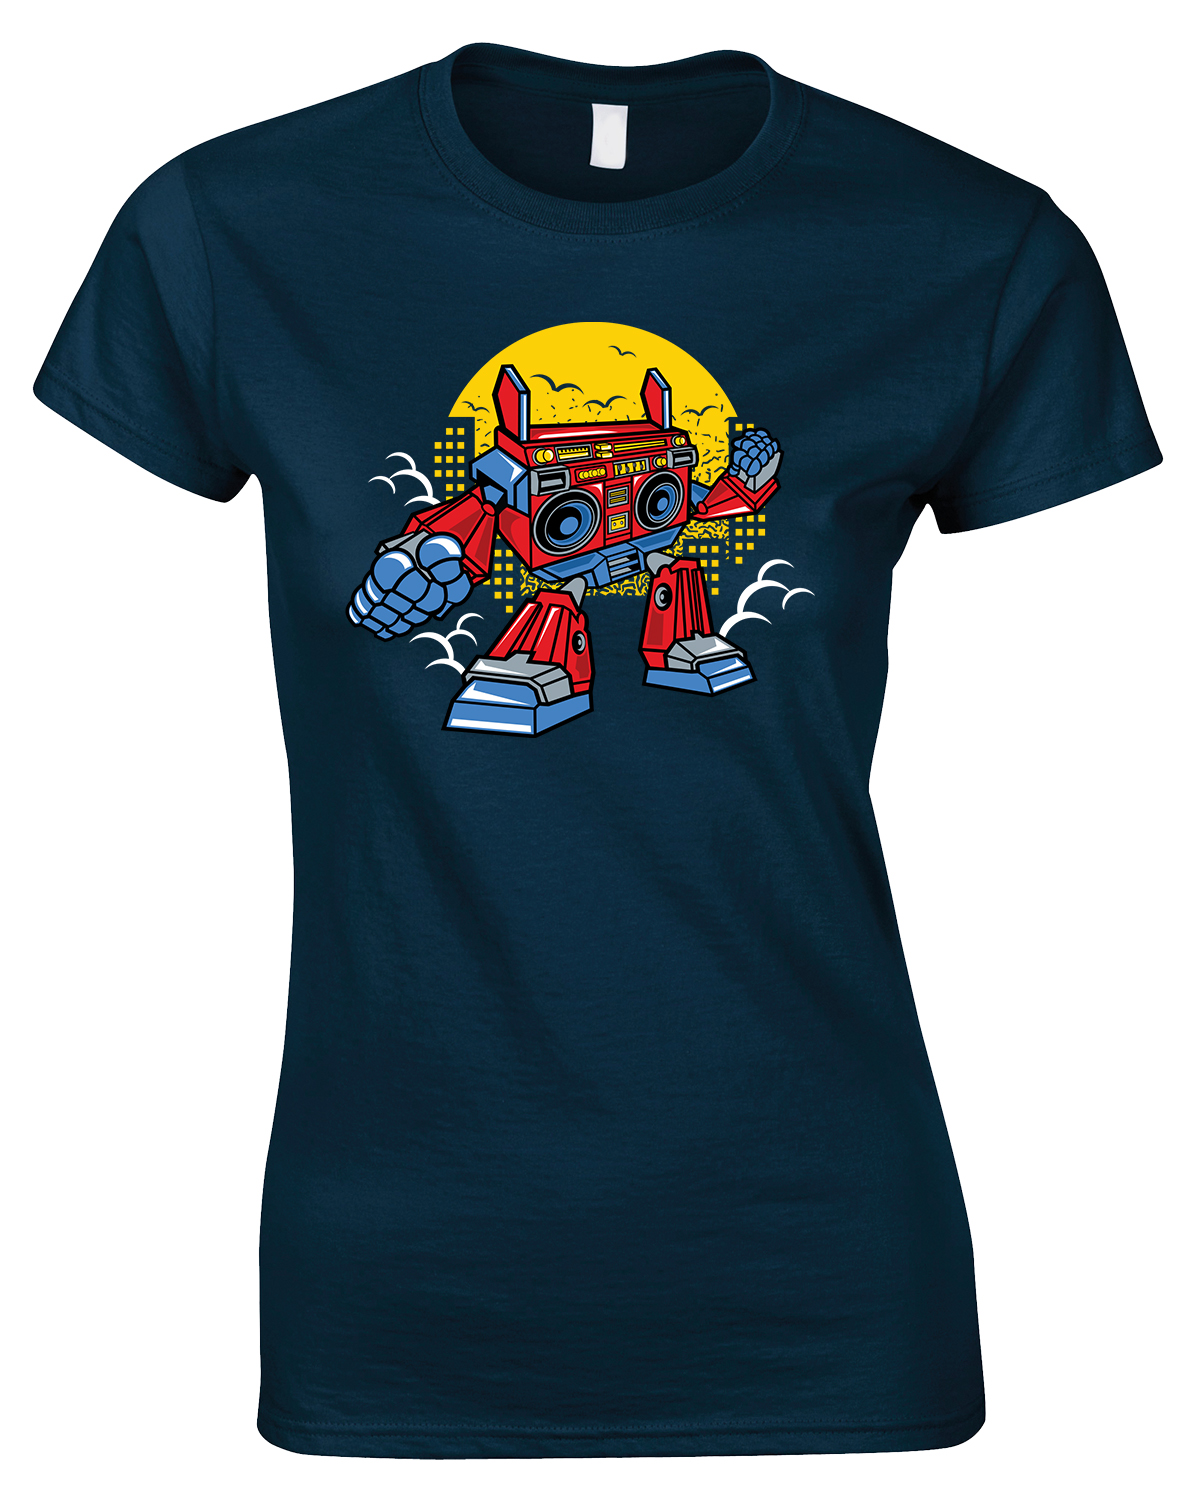 Boombox Robot Funny Ladies Style T Shirt